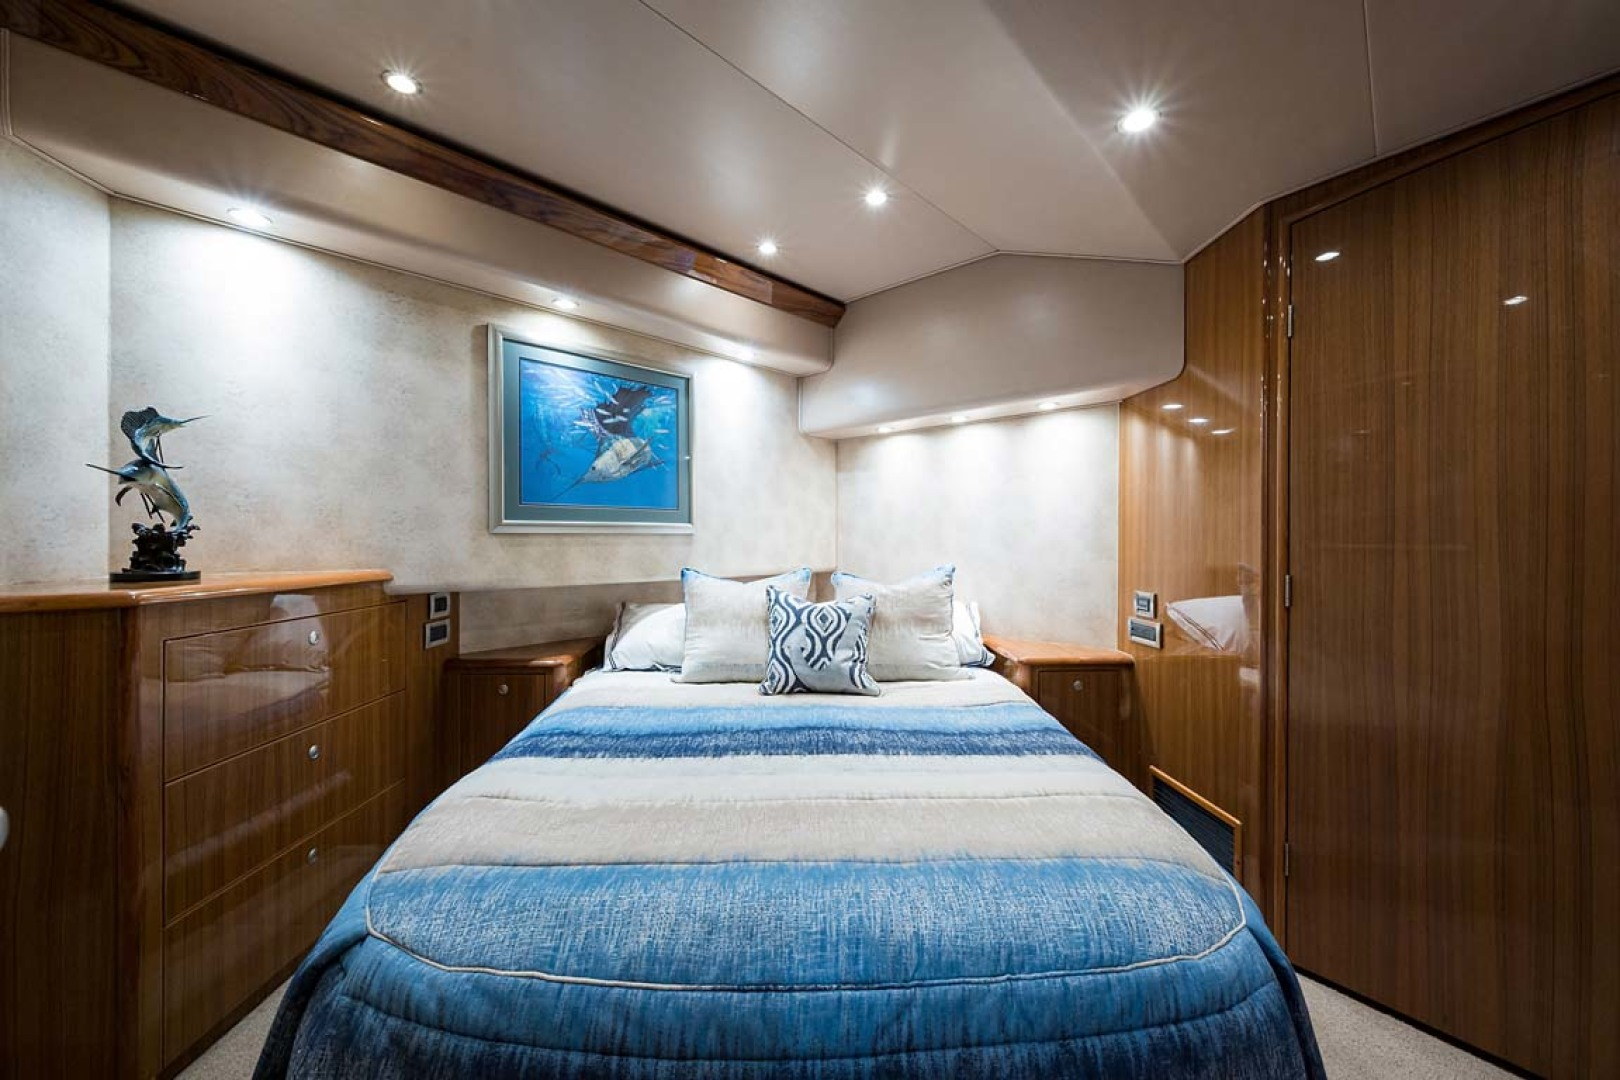 Viking-Sportfish 2007-Silver Fox Stuart-Florida-United States-Master Stateroom with Queen Bed (on angle) and Storage Under-1255846   Thumbnail